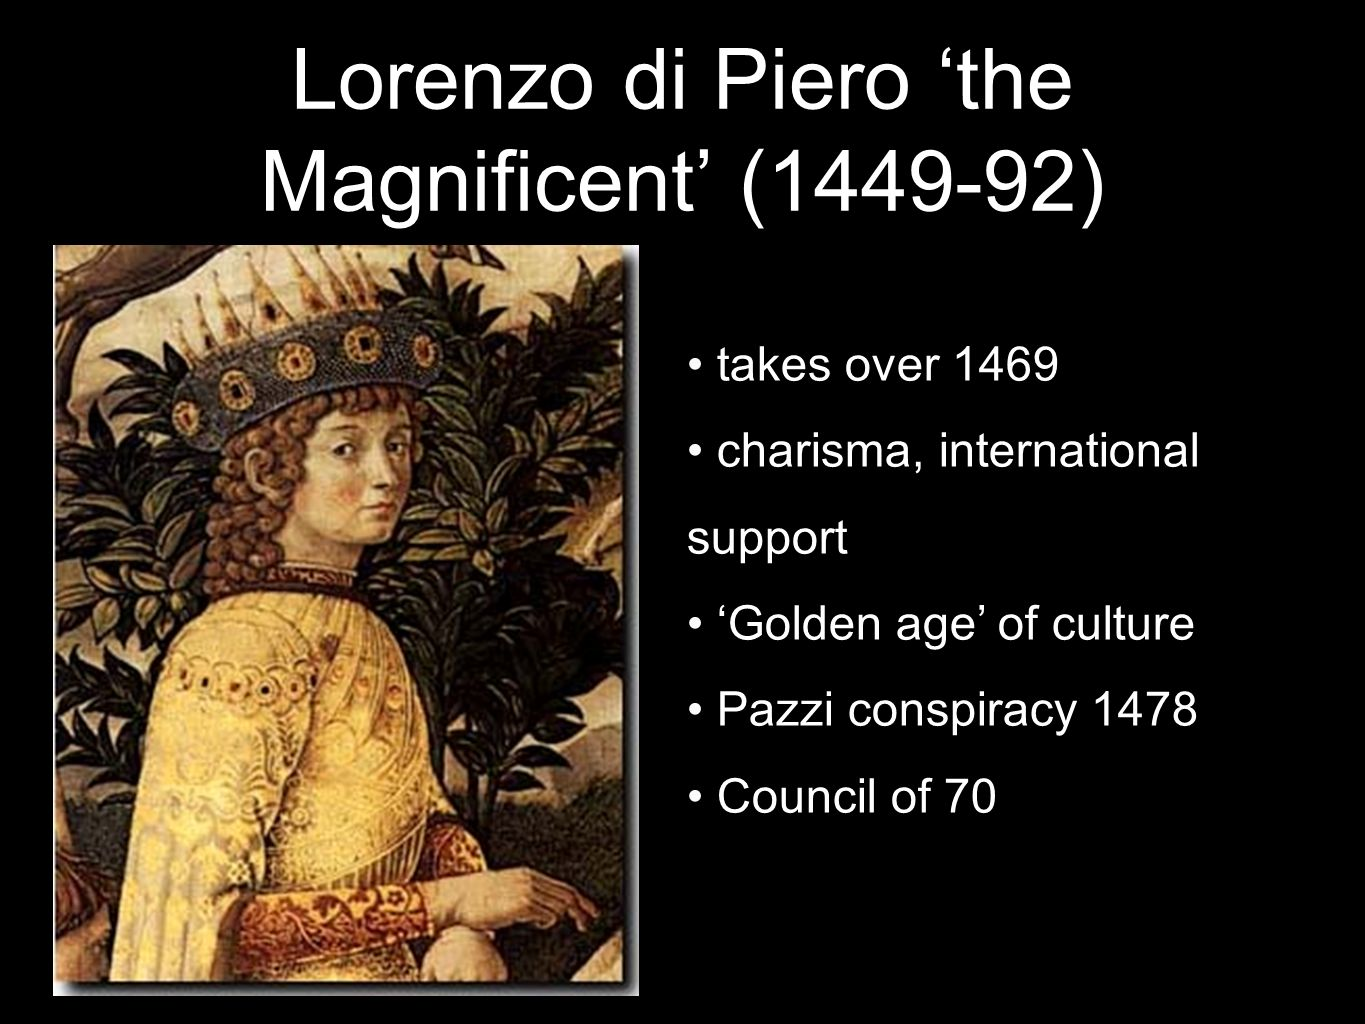 takes over 1469 charisma, international support Golden age of culture Pazzi conspiracy 1478 Council of 70 Lorenzo di Piero the Magnificent (1449-92)